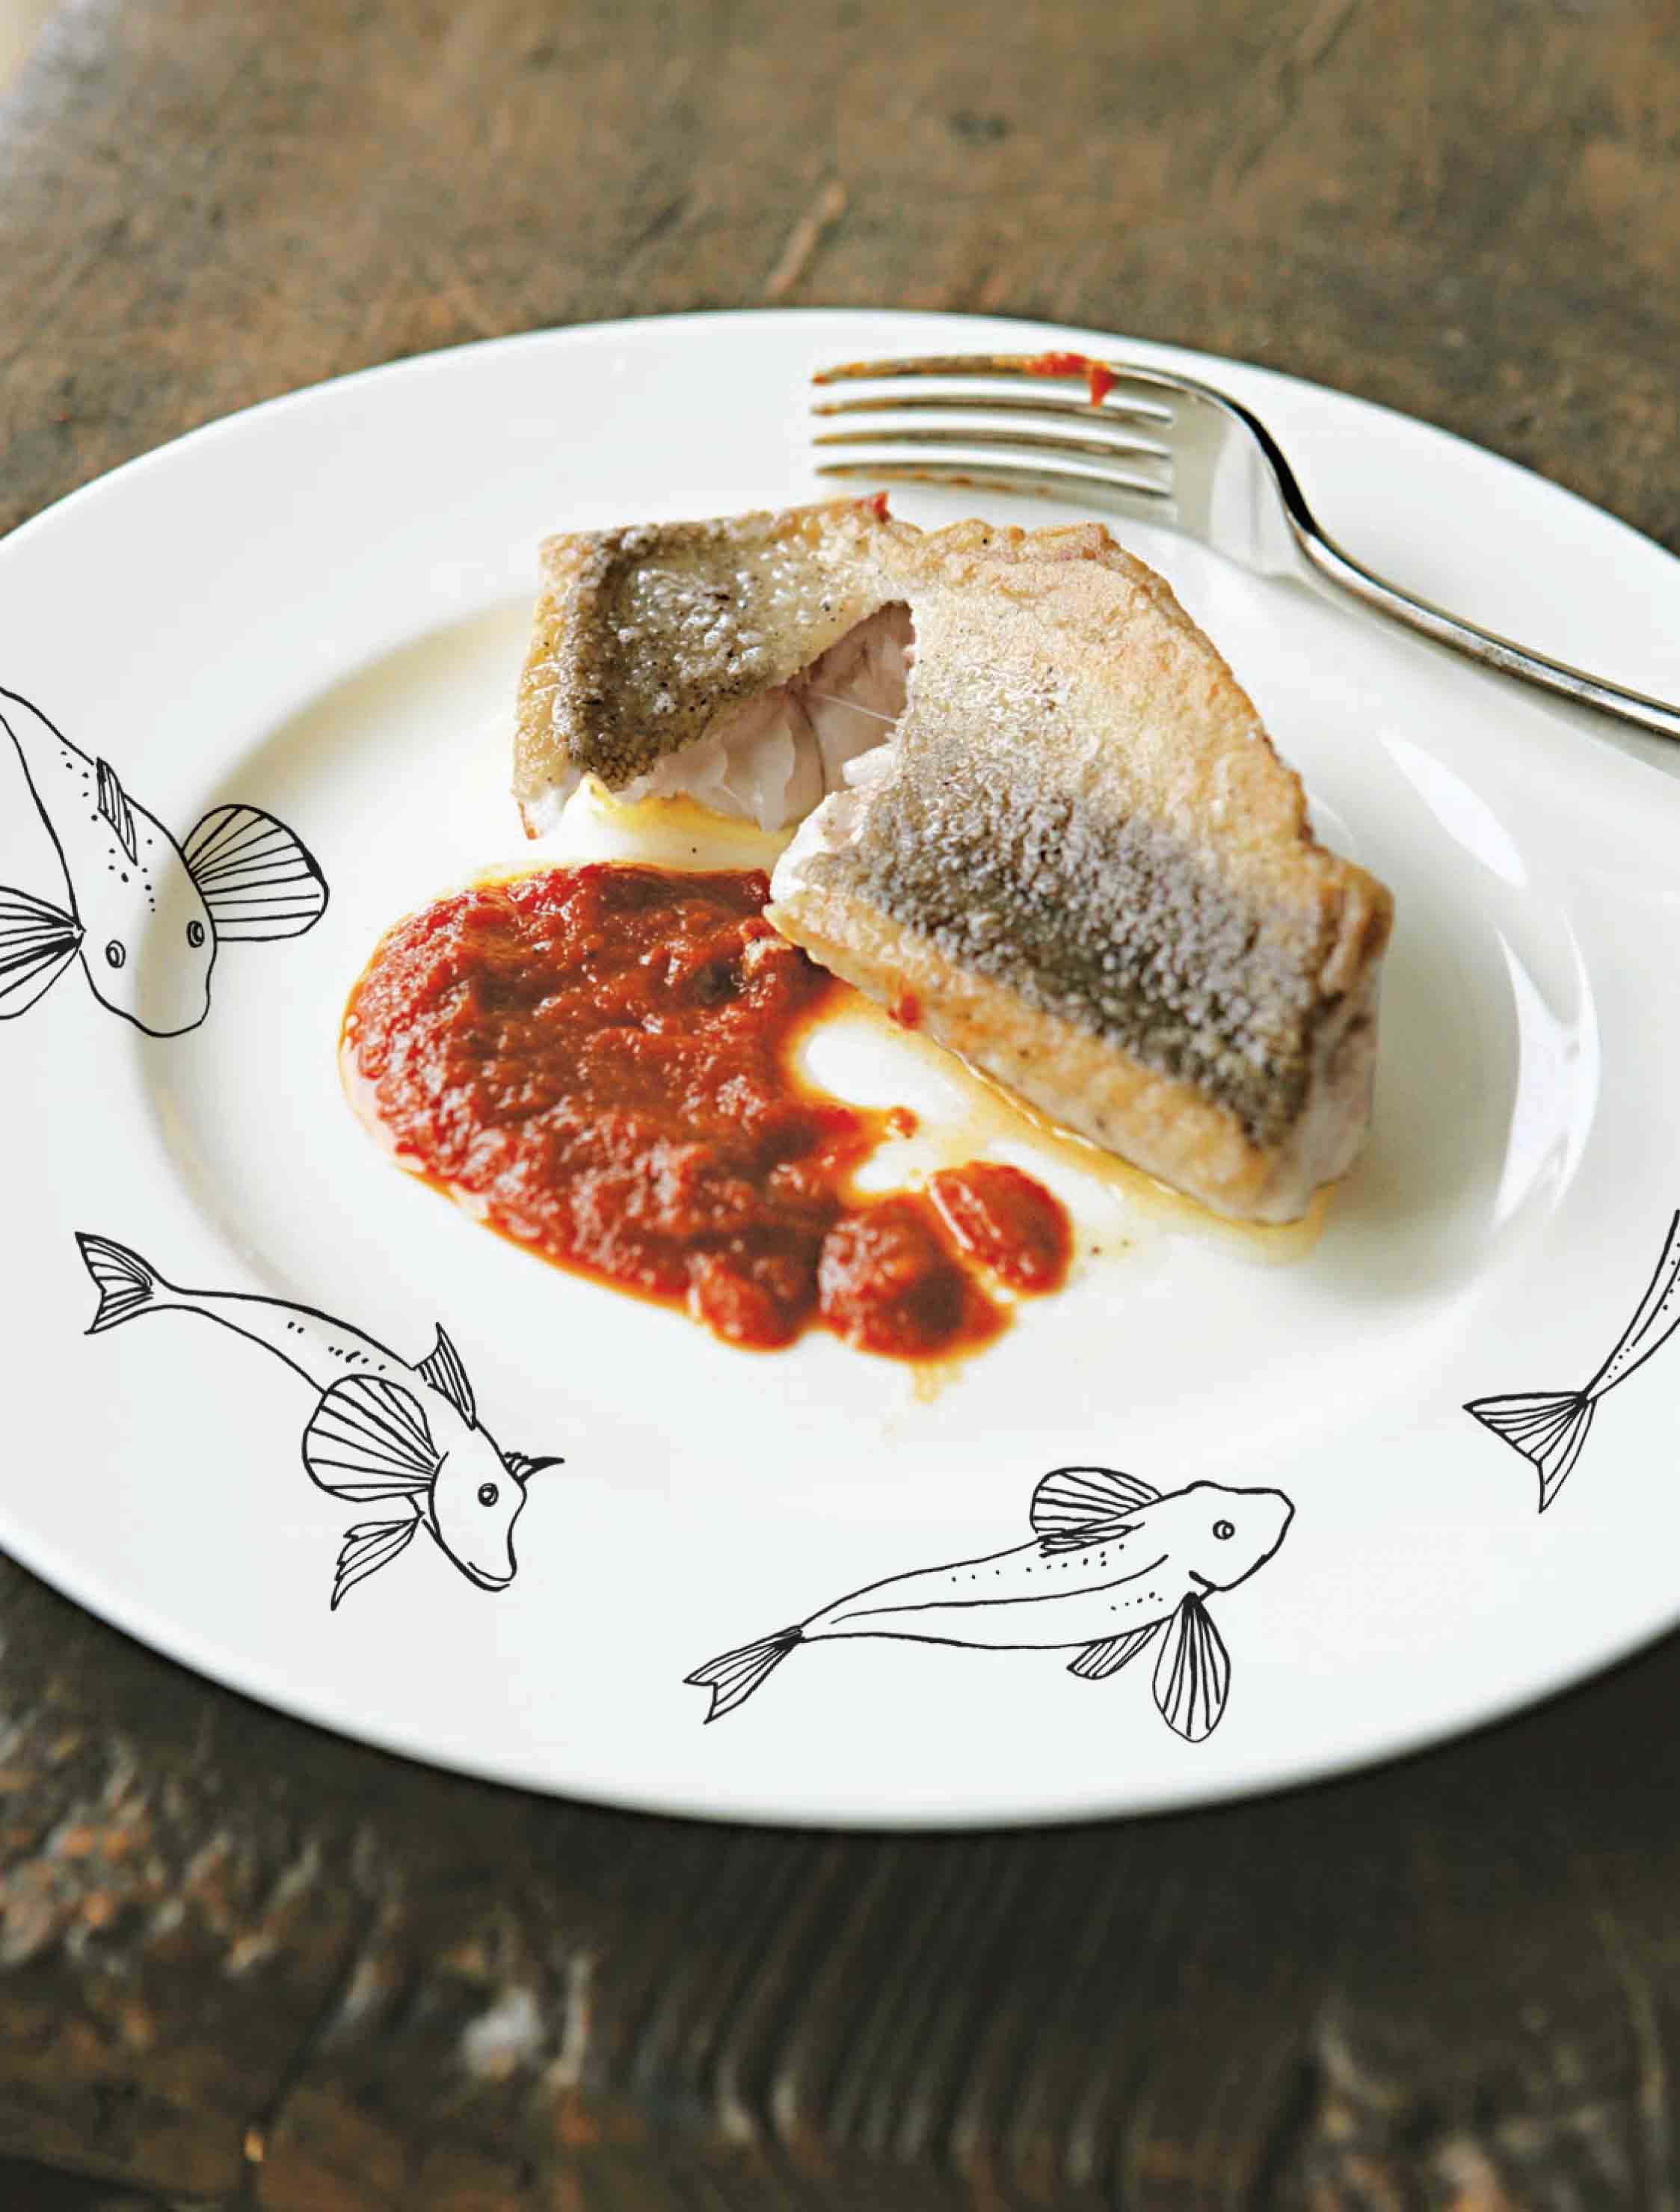 Fried fish fillets with roasted tomato sauce